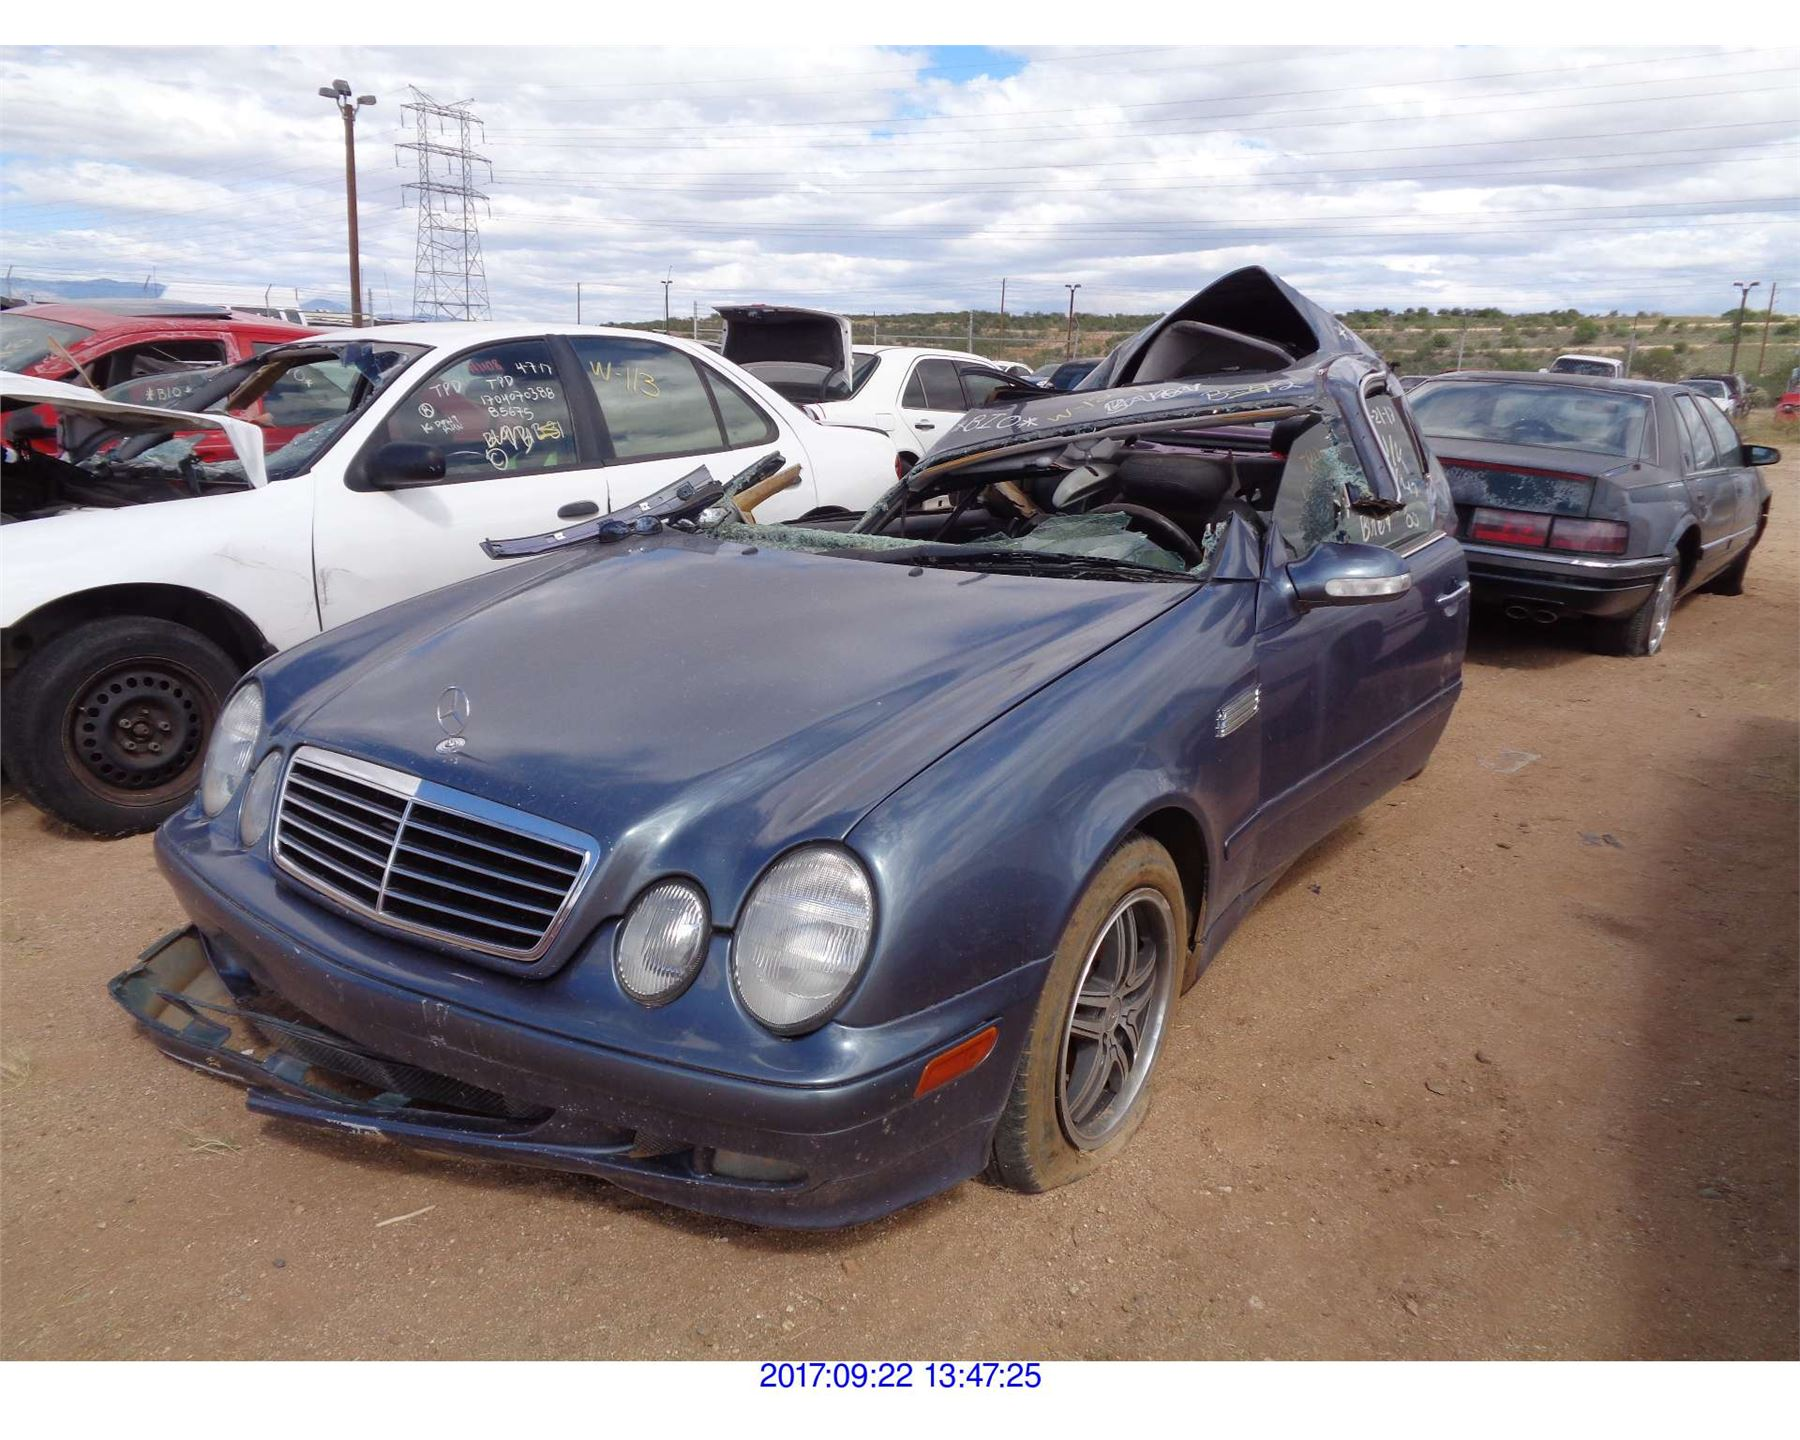 2000 Mercedes Benz C Class Restored Salvage Rod